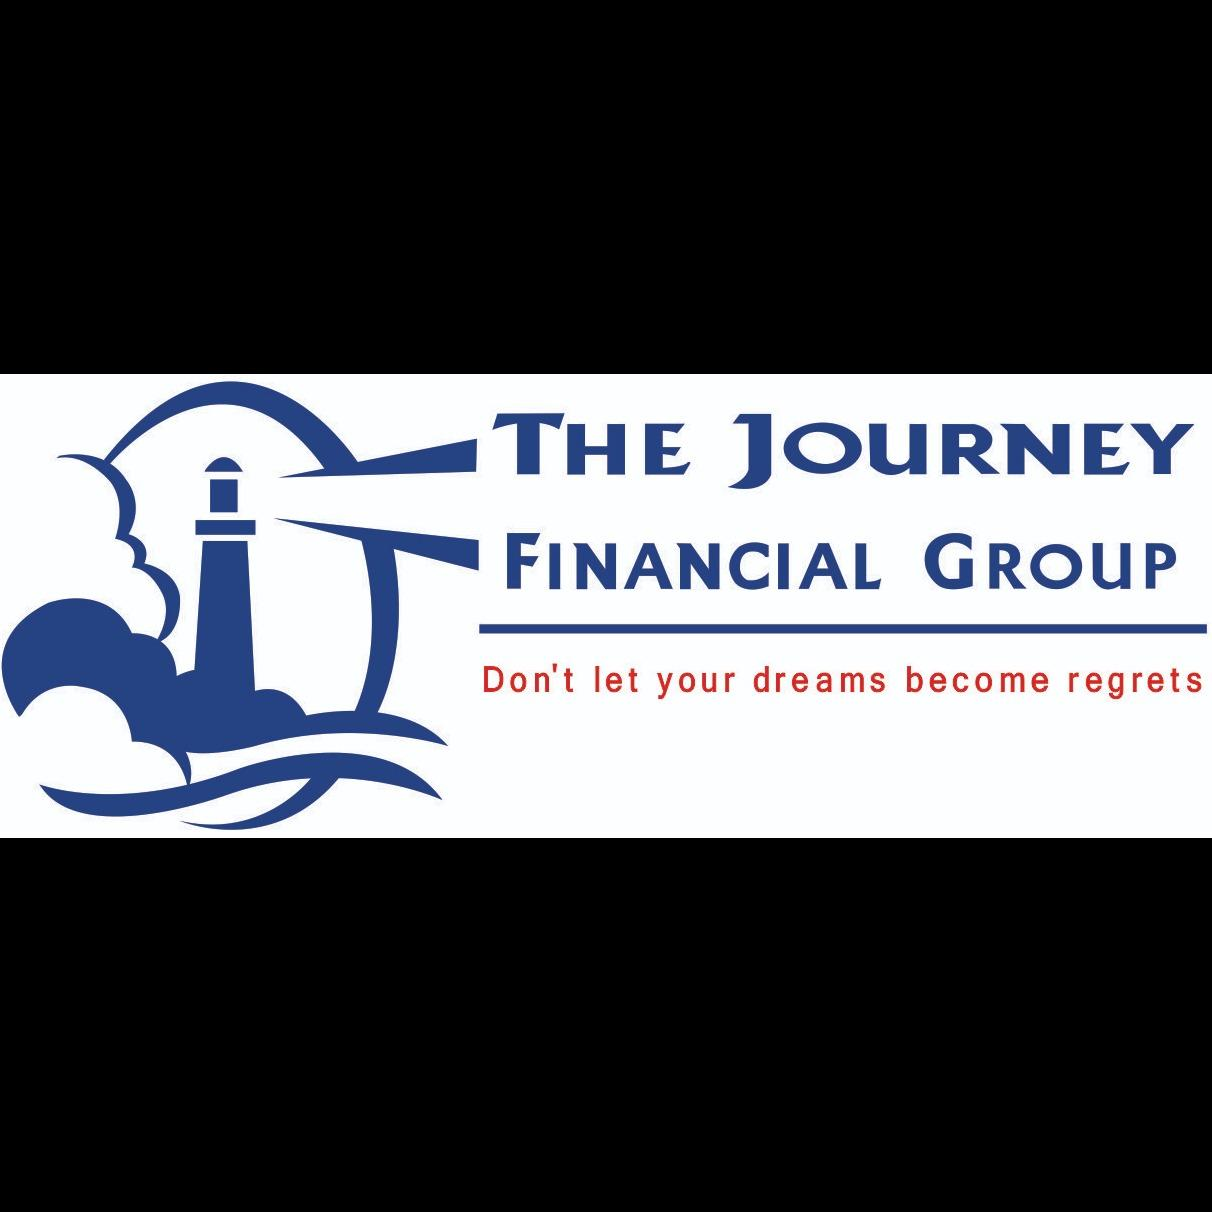 The Journey Financial Group image 3